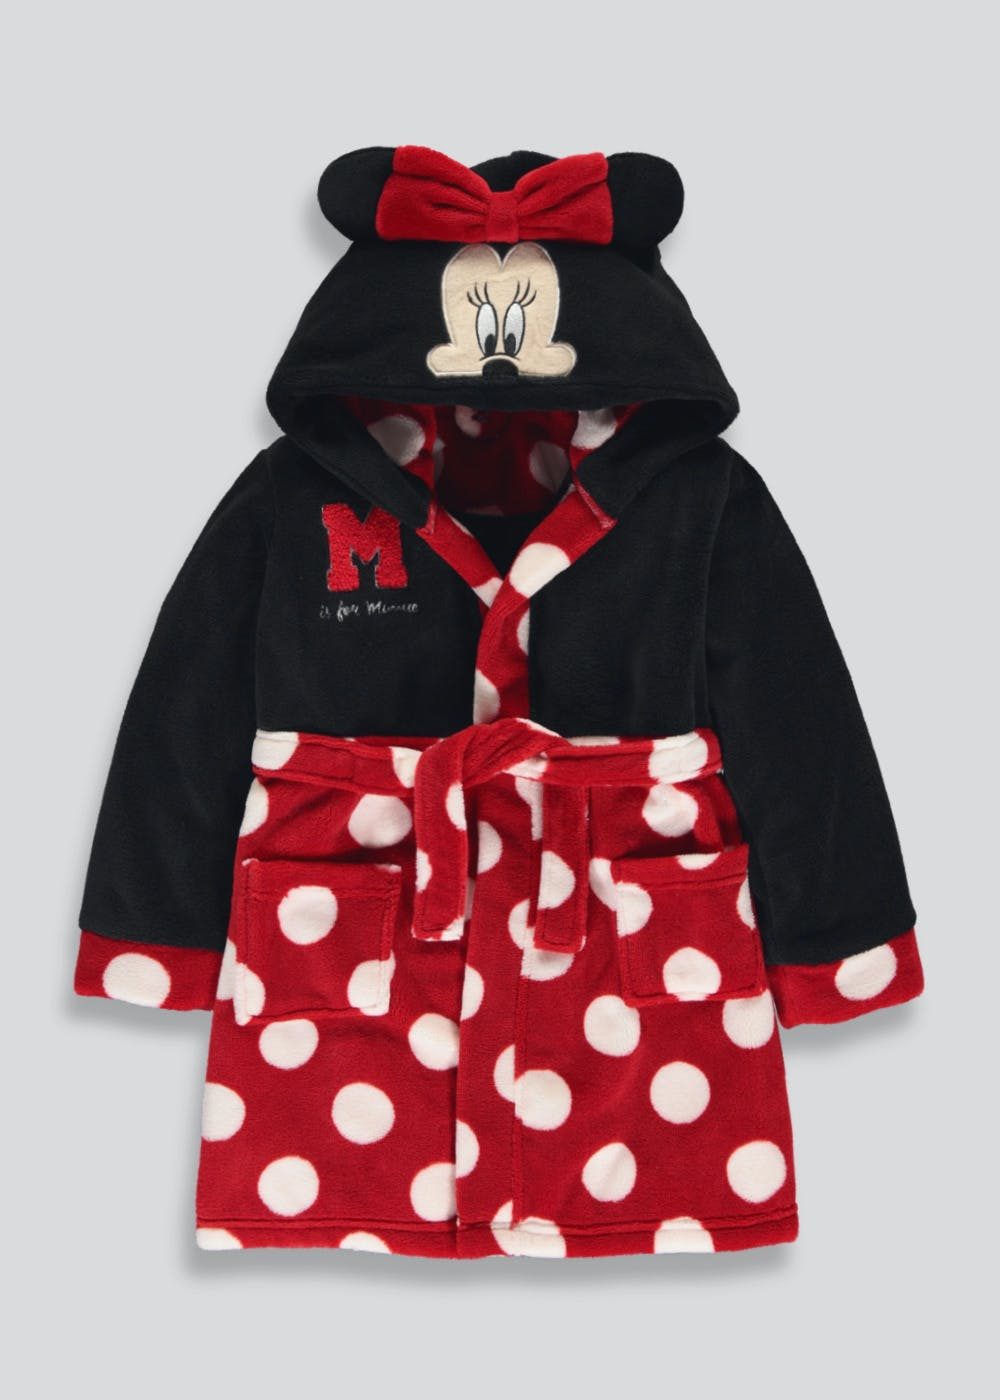 Outstanding Minnie Mouse Dressing Gown Pattern - Wedding and flowers ...